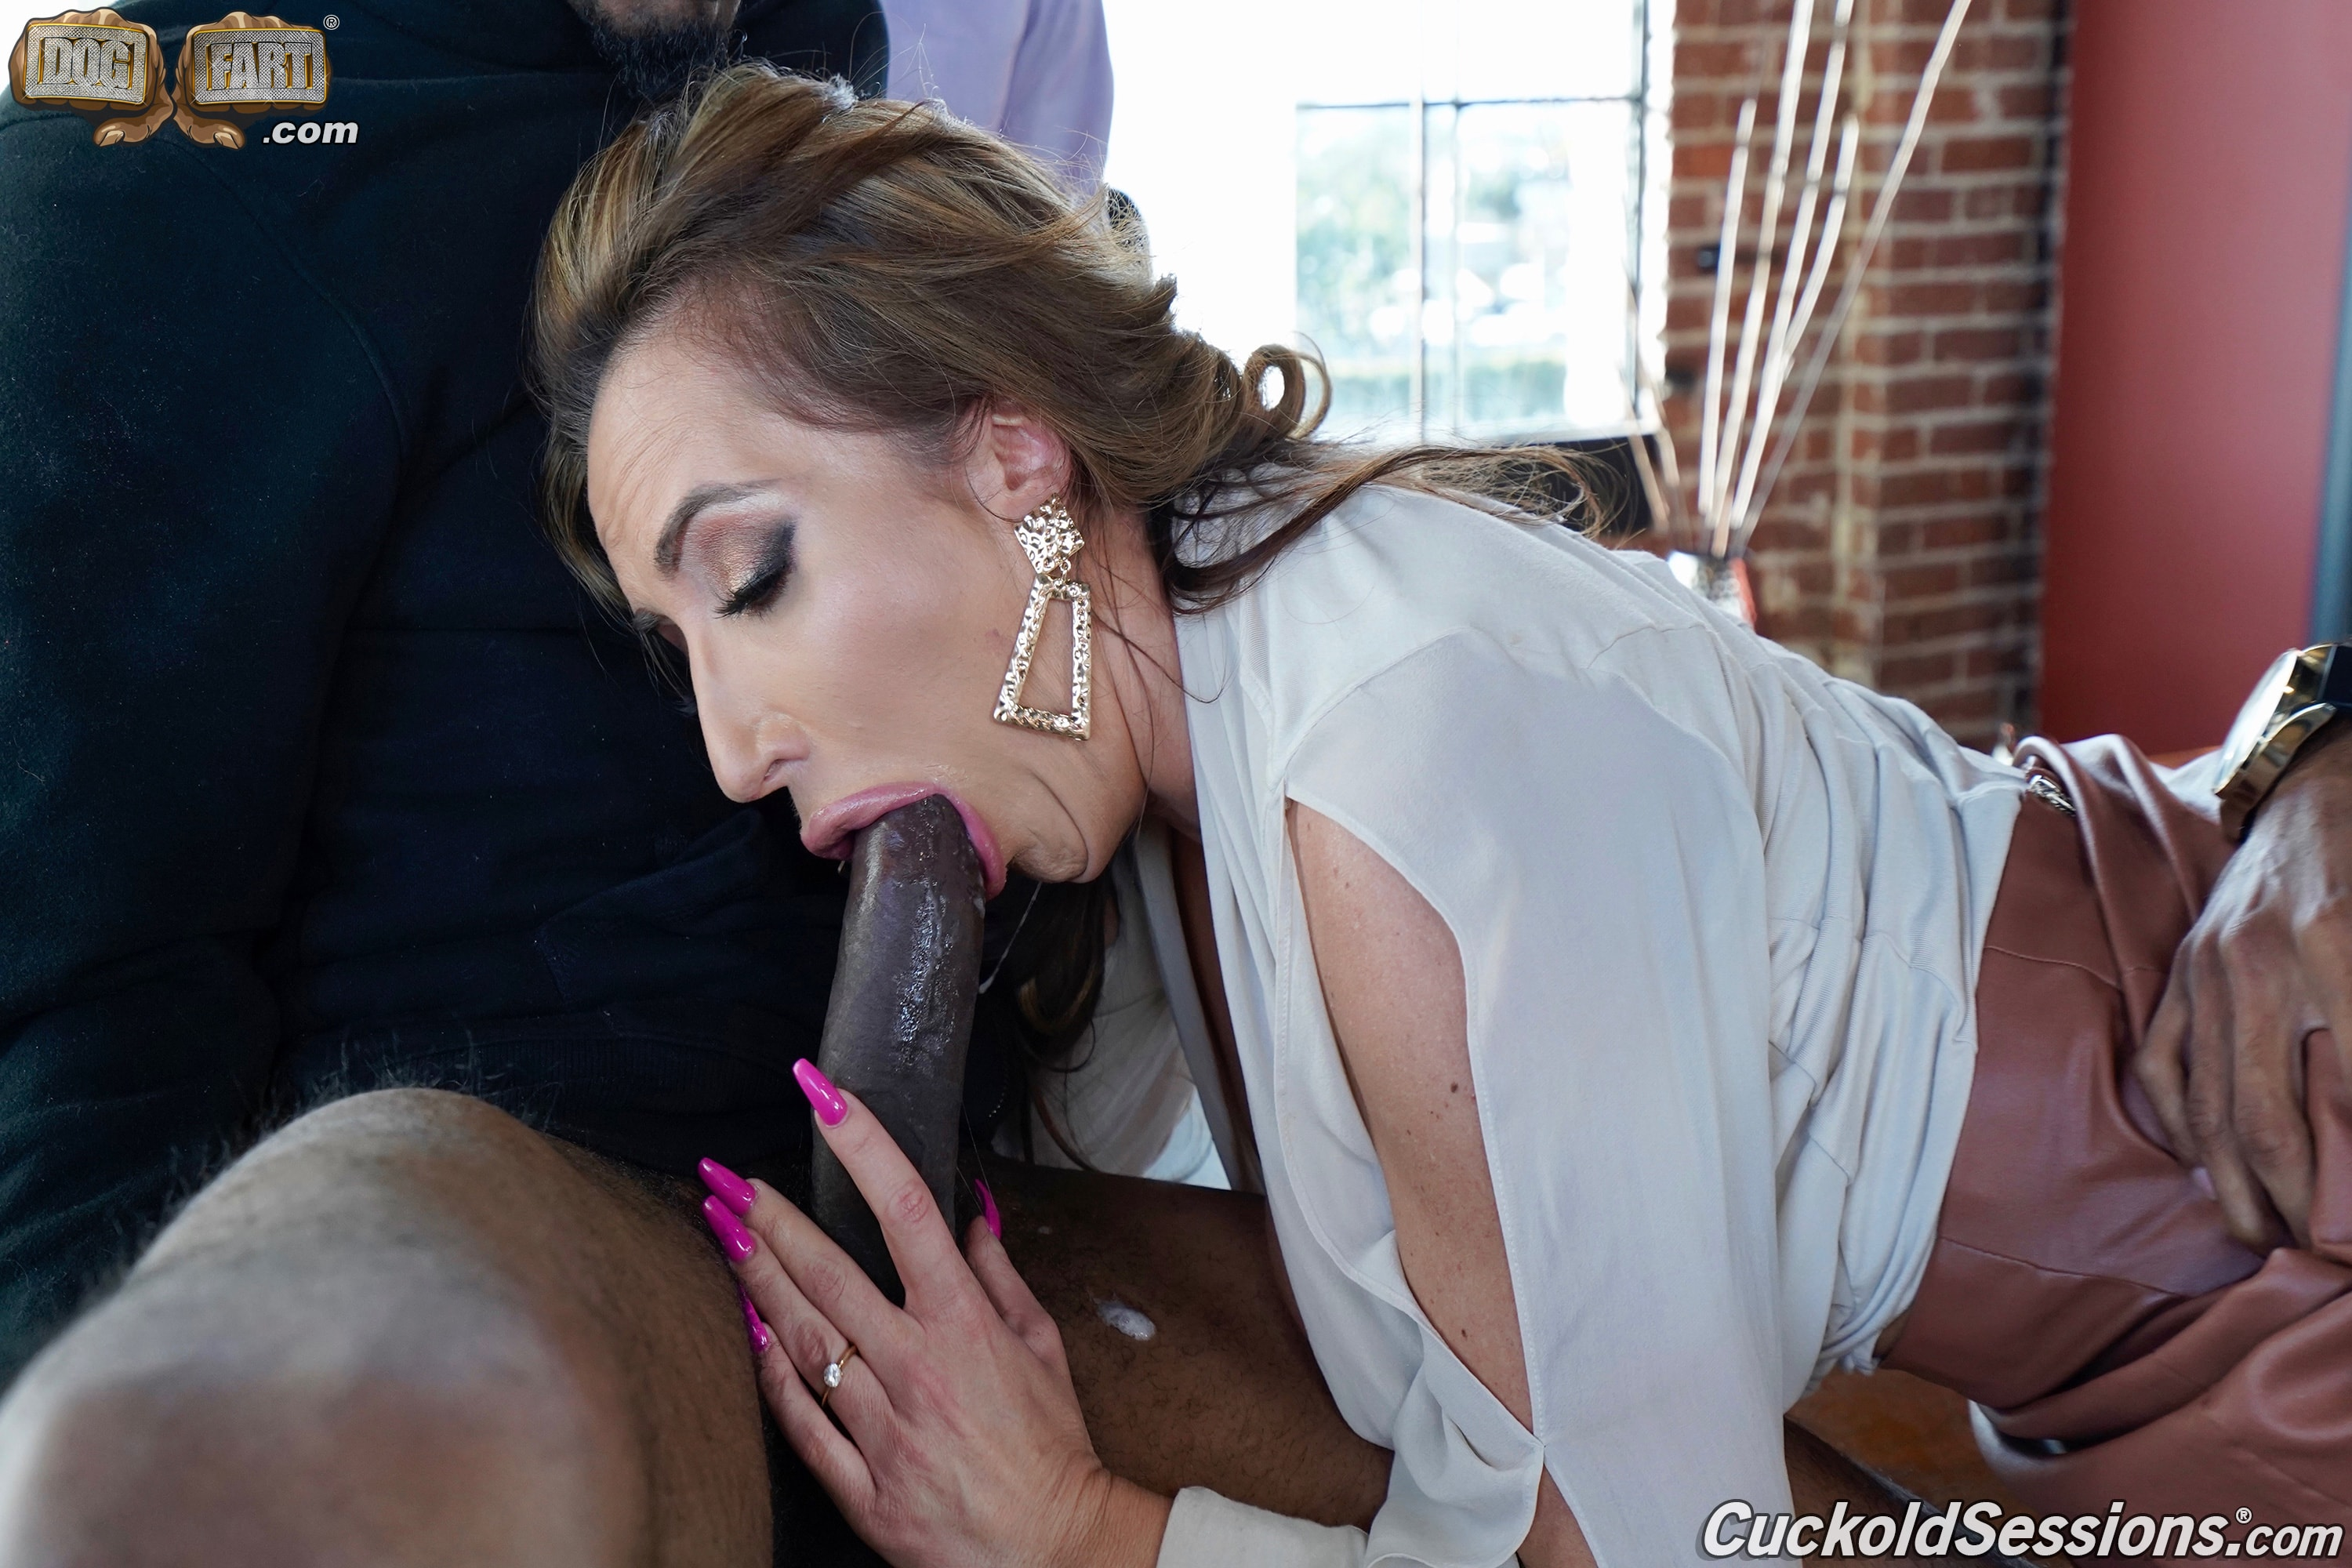 Dogfart '- Cuckold Sessions - Scene 2' starring Richelle Ryan (Photo 15)